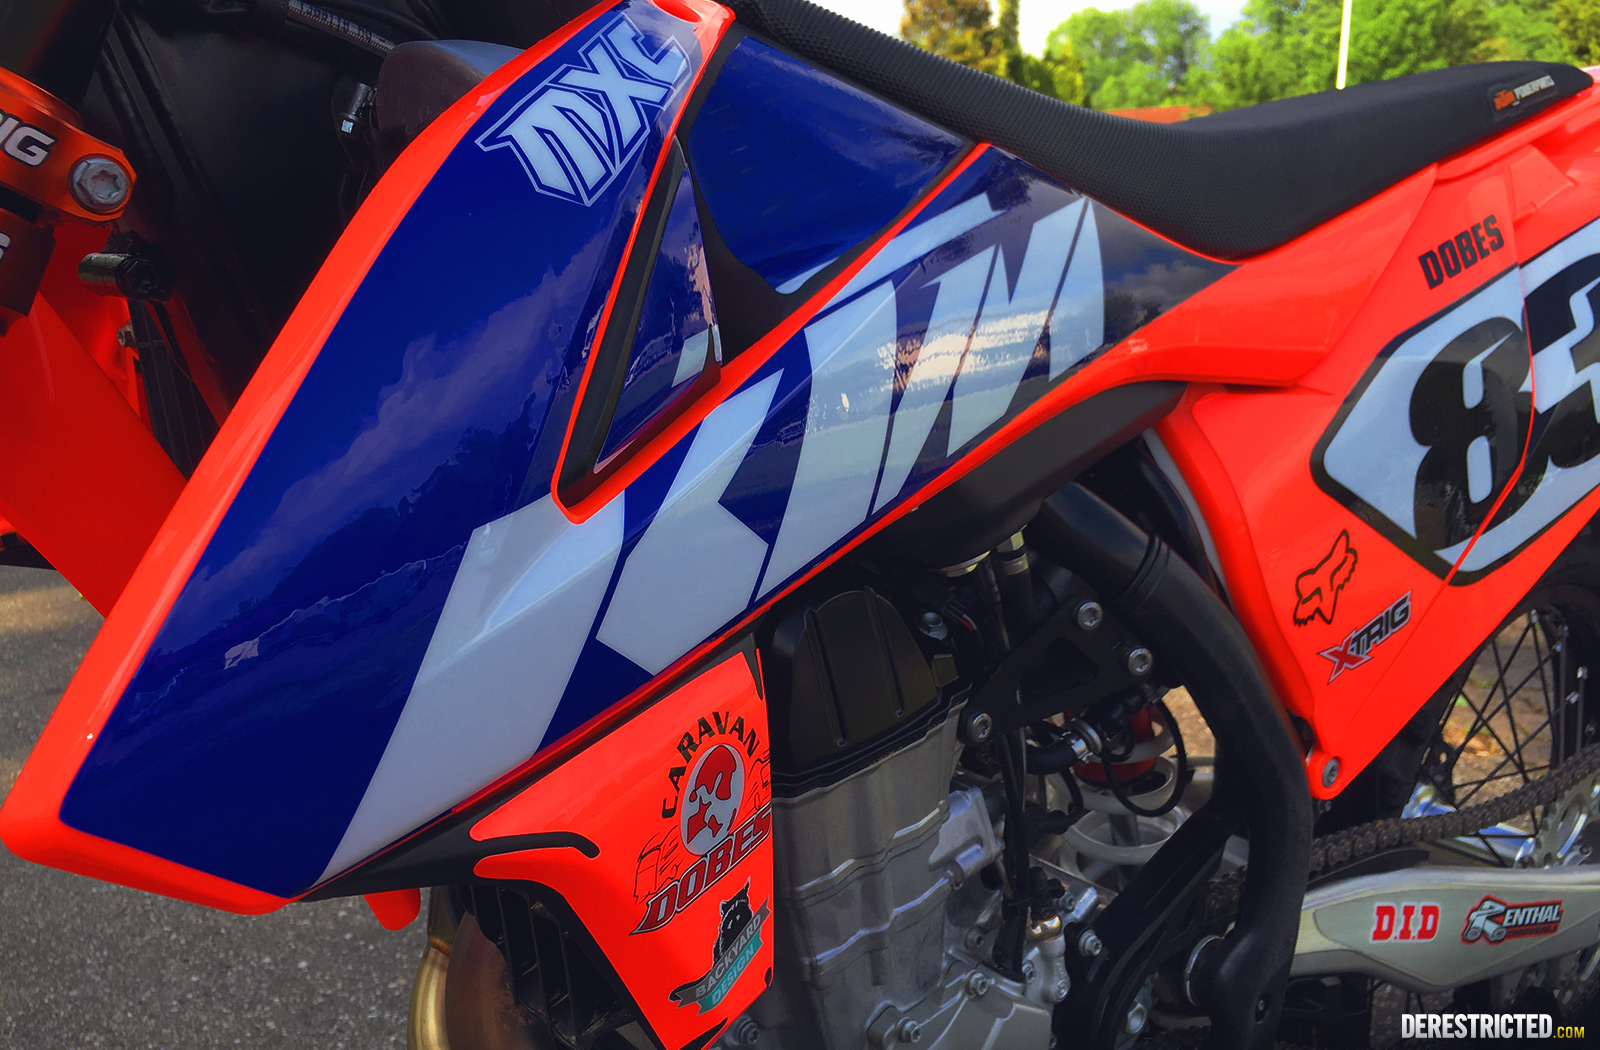 Ktm Smc R in addition Maxresdefault as well Maxresdefault in addition  further Maxresdefault. on ktm 690 smc